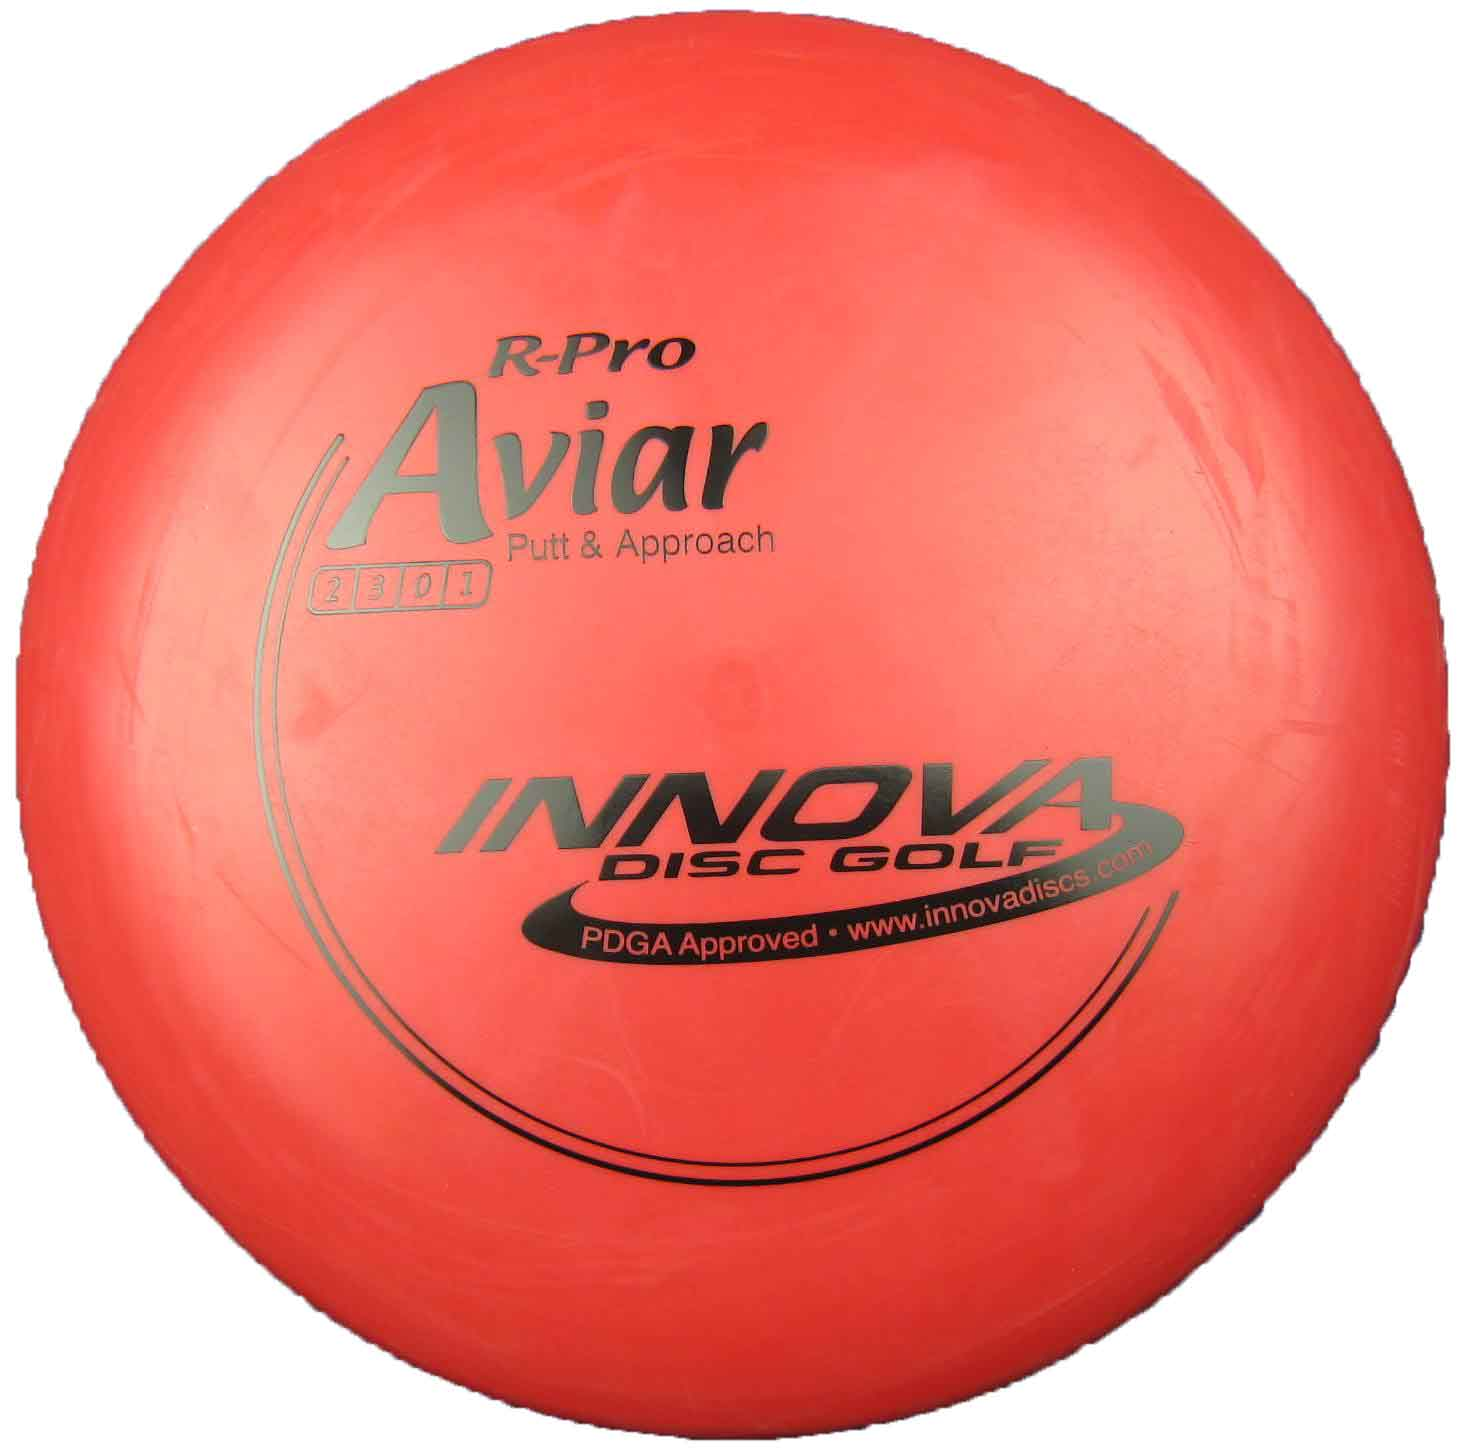 Aviar P & A R Pro Orange